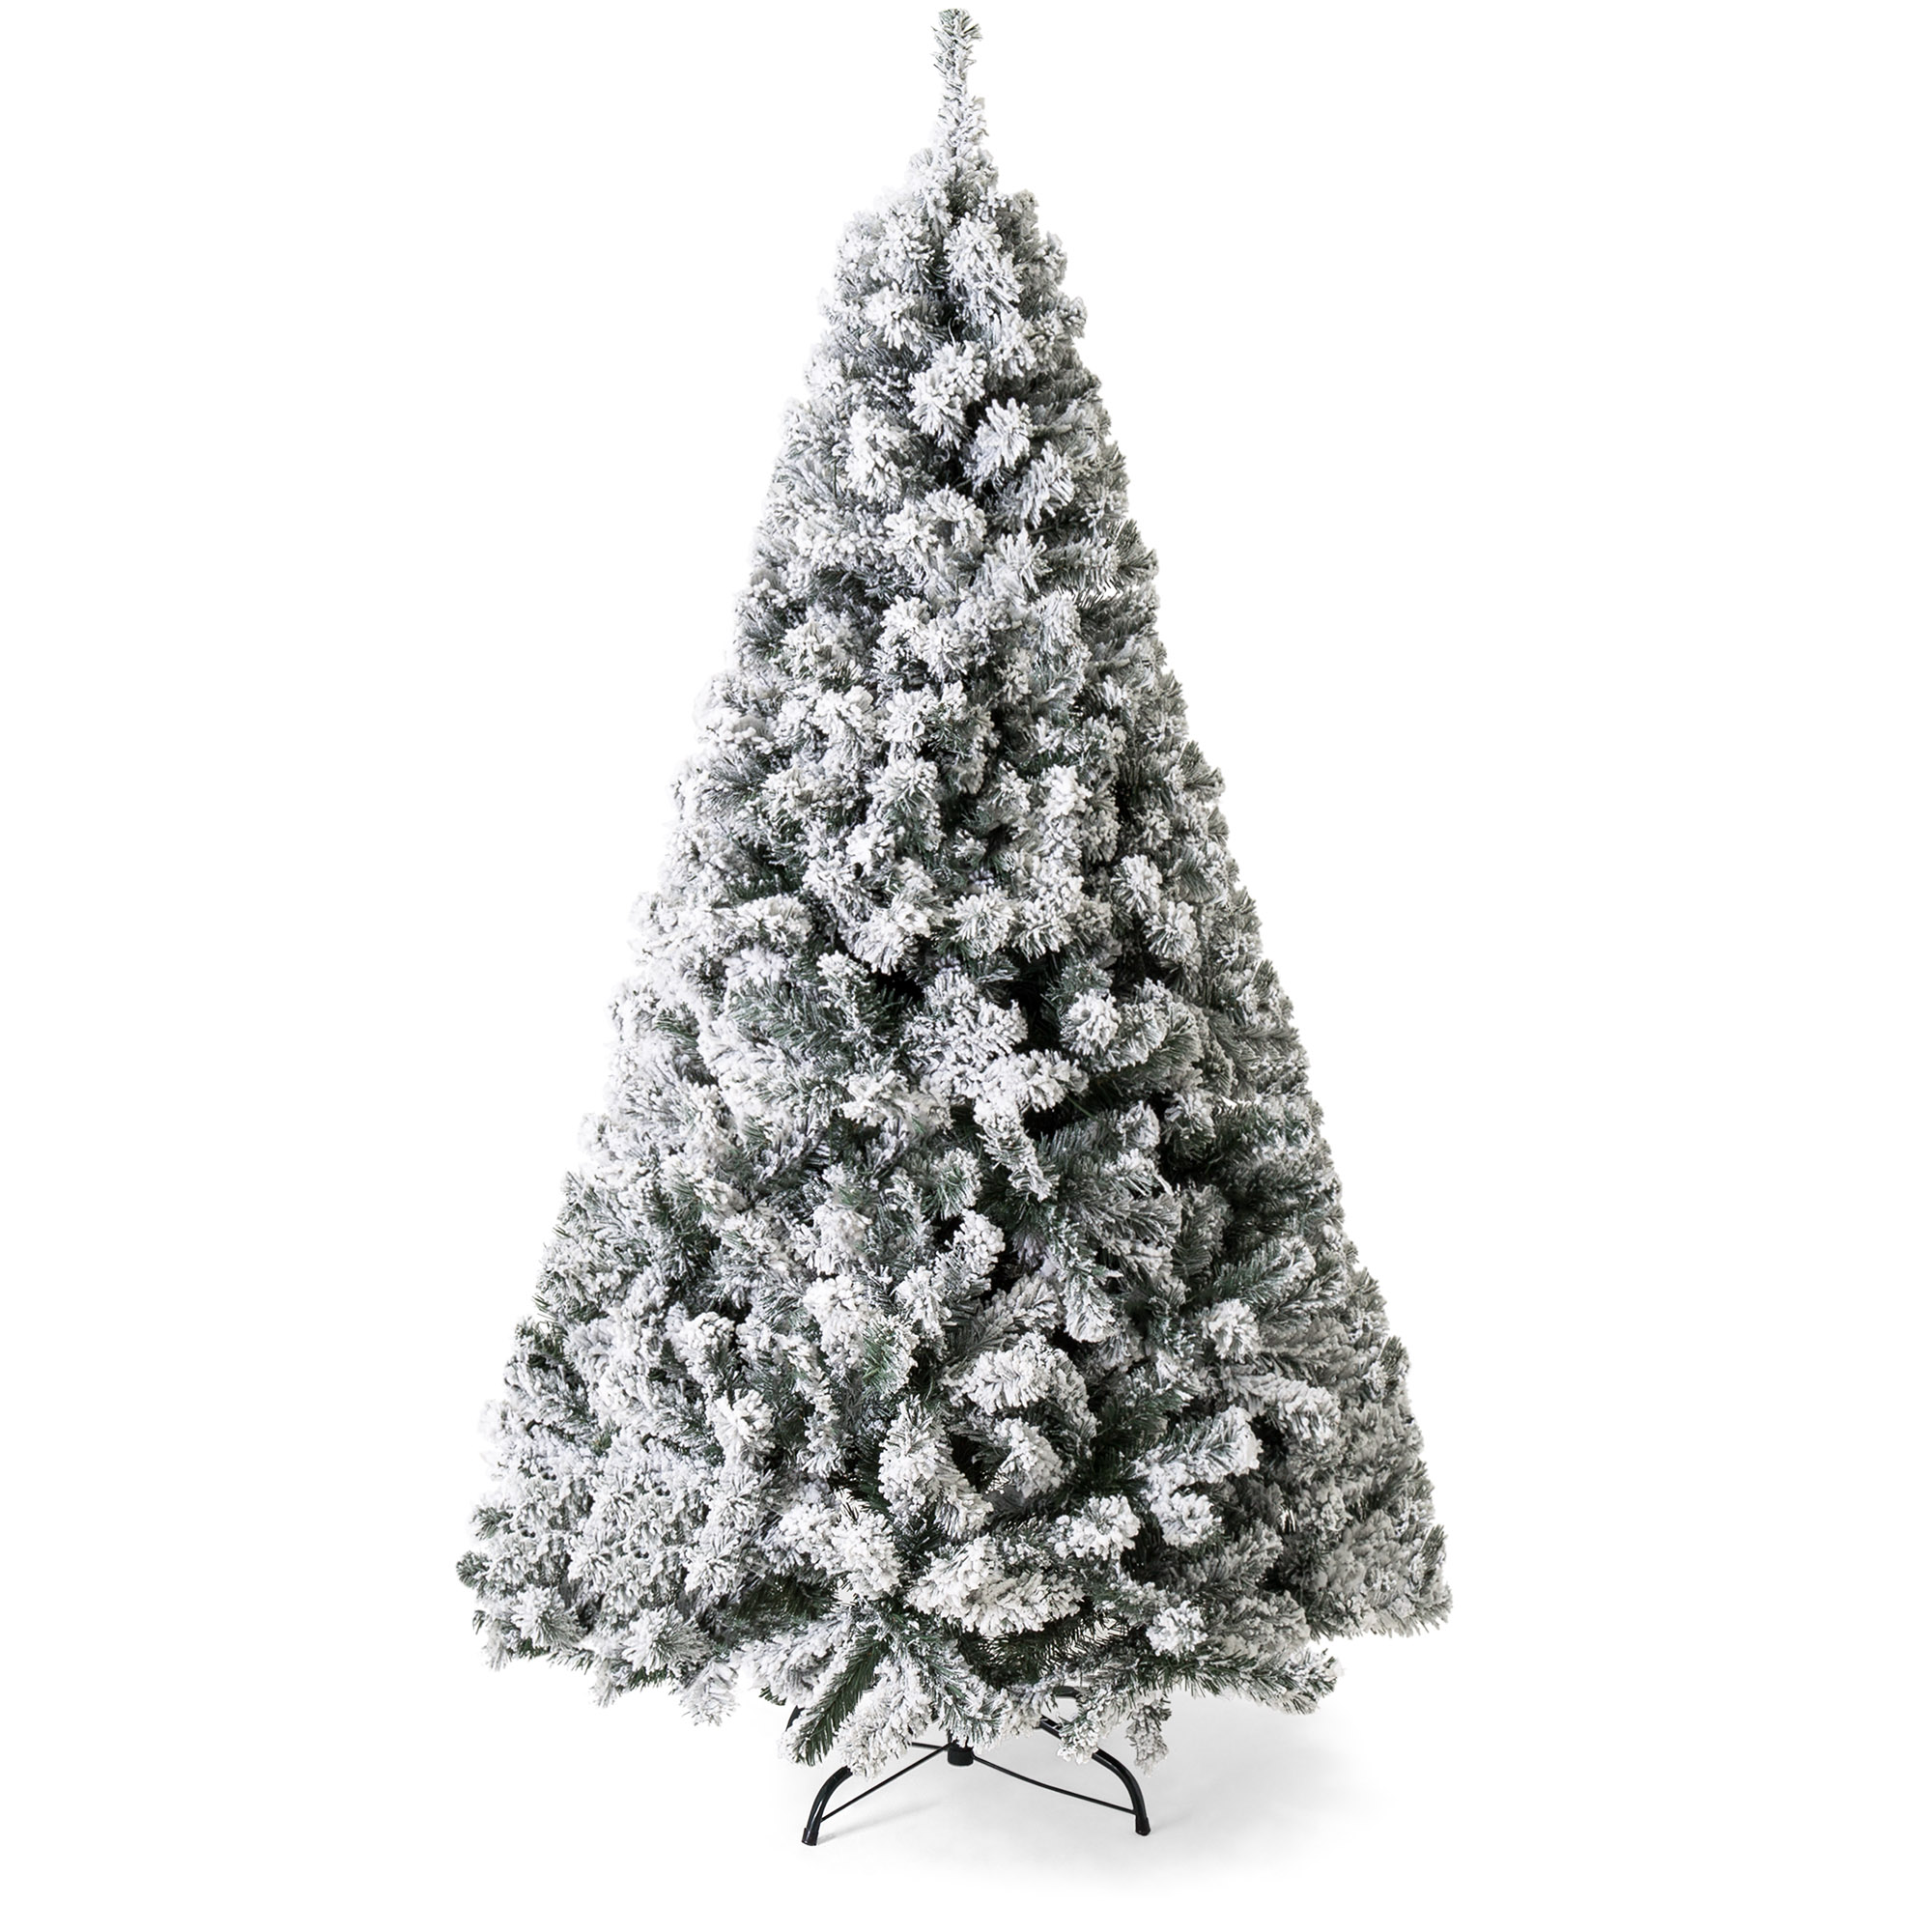 Walmart – Best Choice Products 7.5ft Premium Snow Flocked Hinged Artificial Christmas Pine Tree Only $133.99 (Reg $243.99) + Free 2-Day Shipping